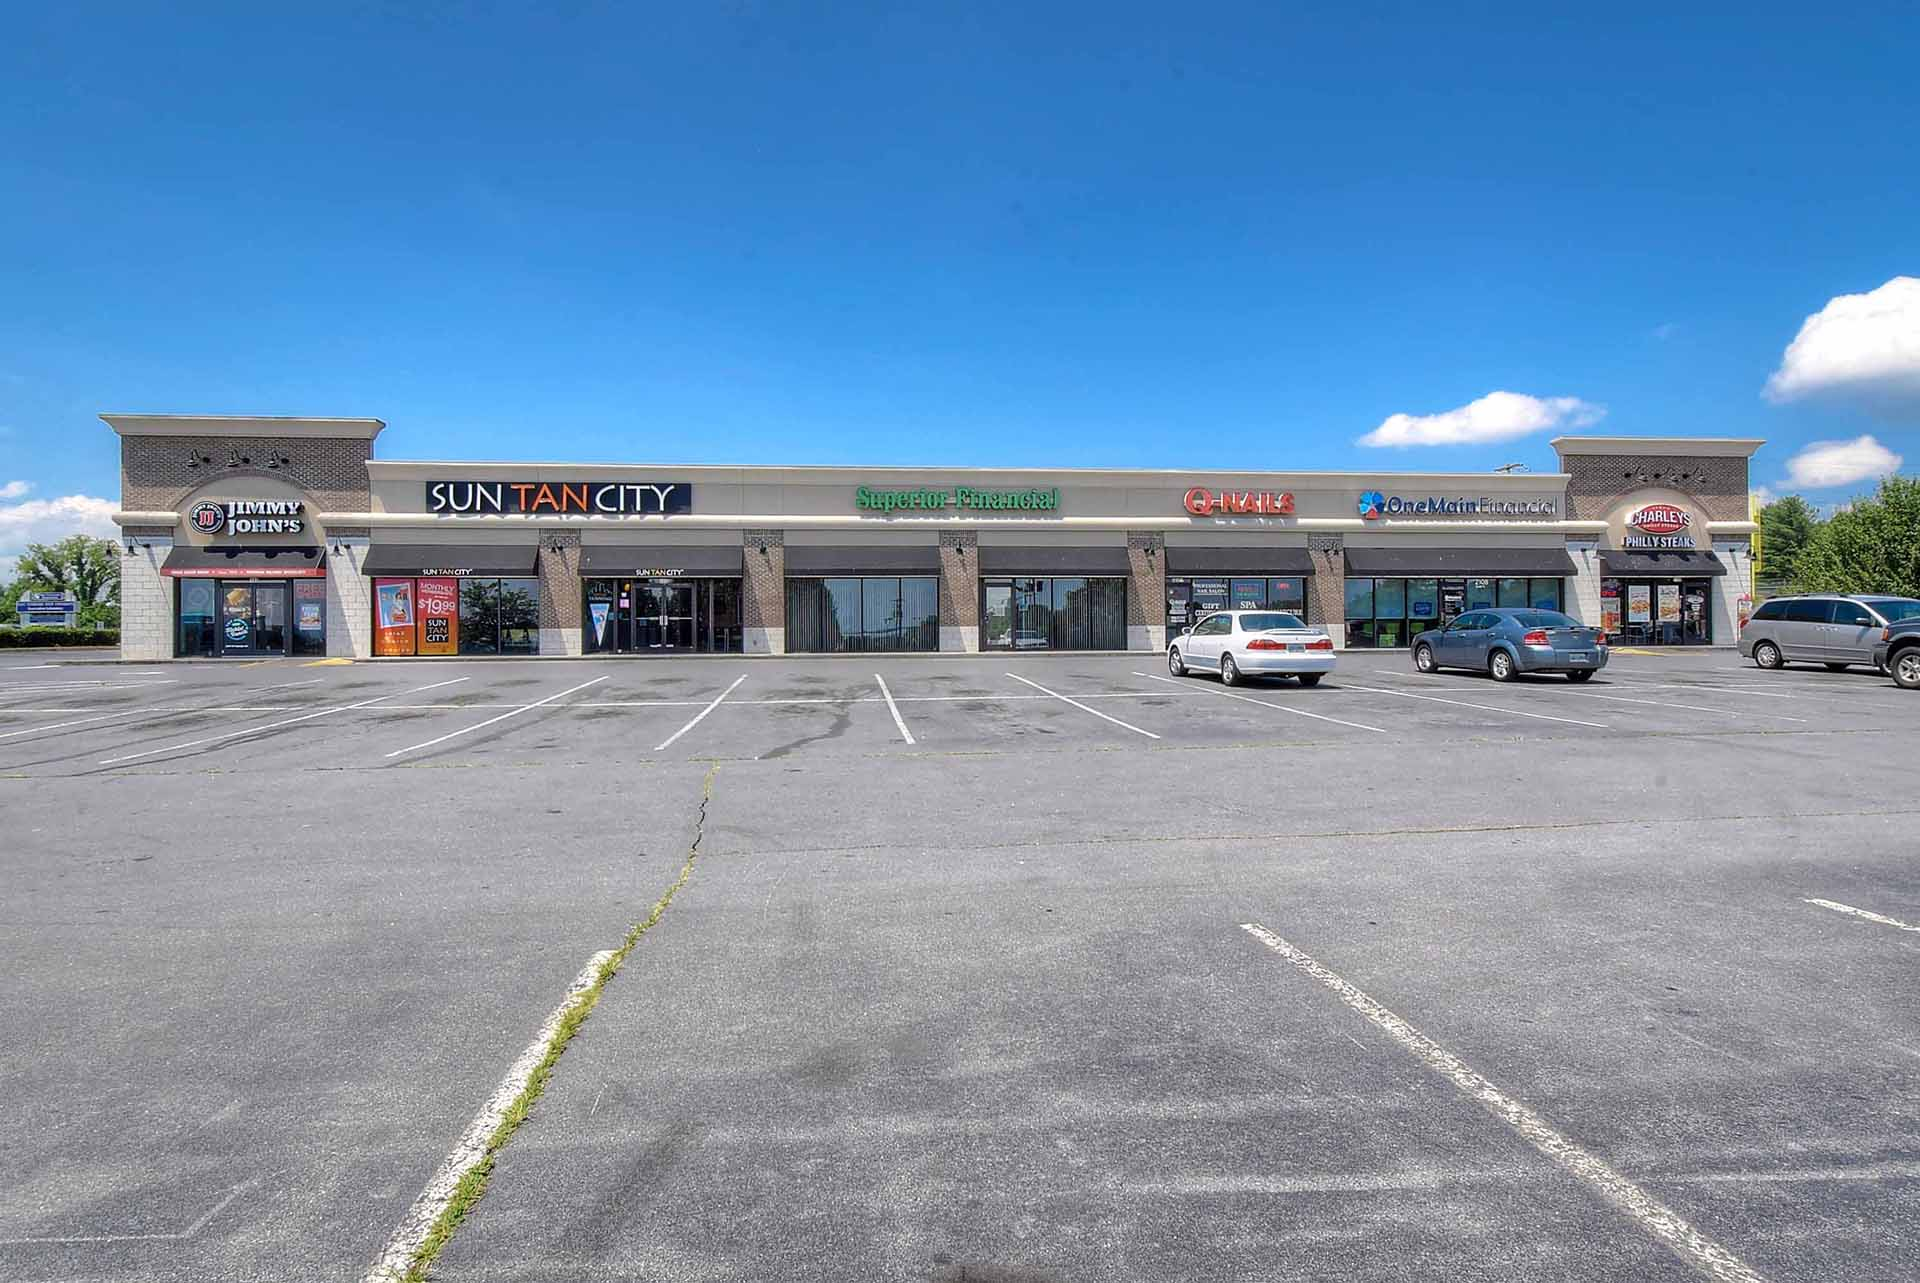 Retail properties for sale including Jimmy John's, Sun Tan City, Superior Financial, One Main Financial, and more